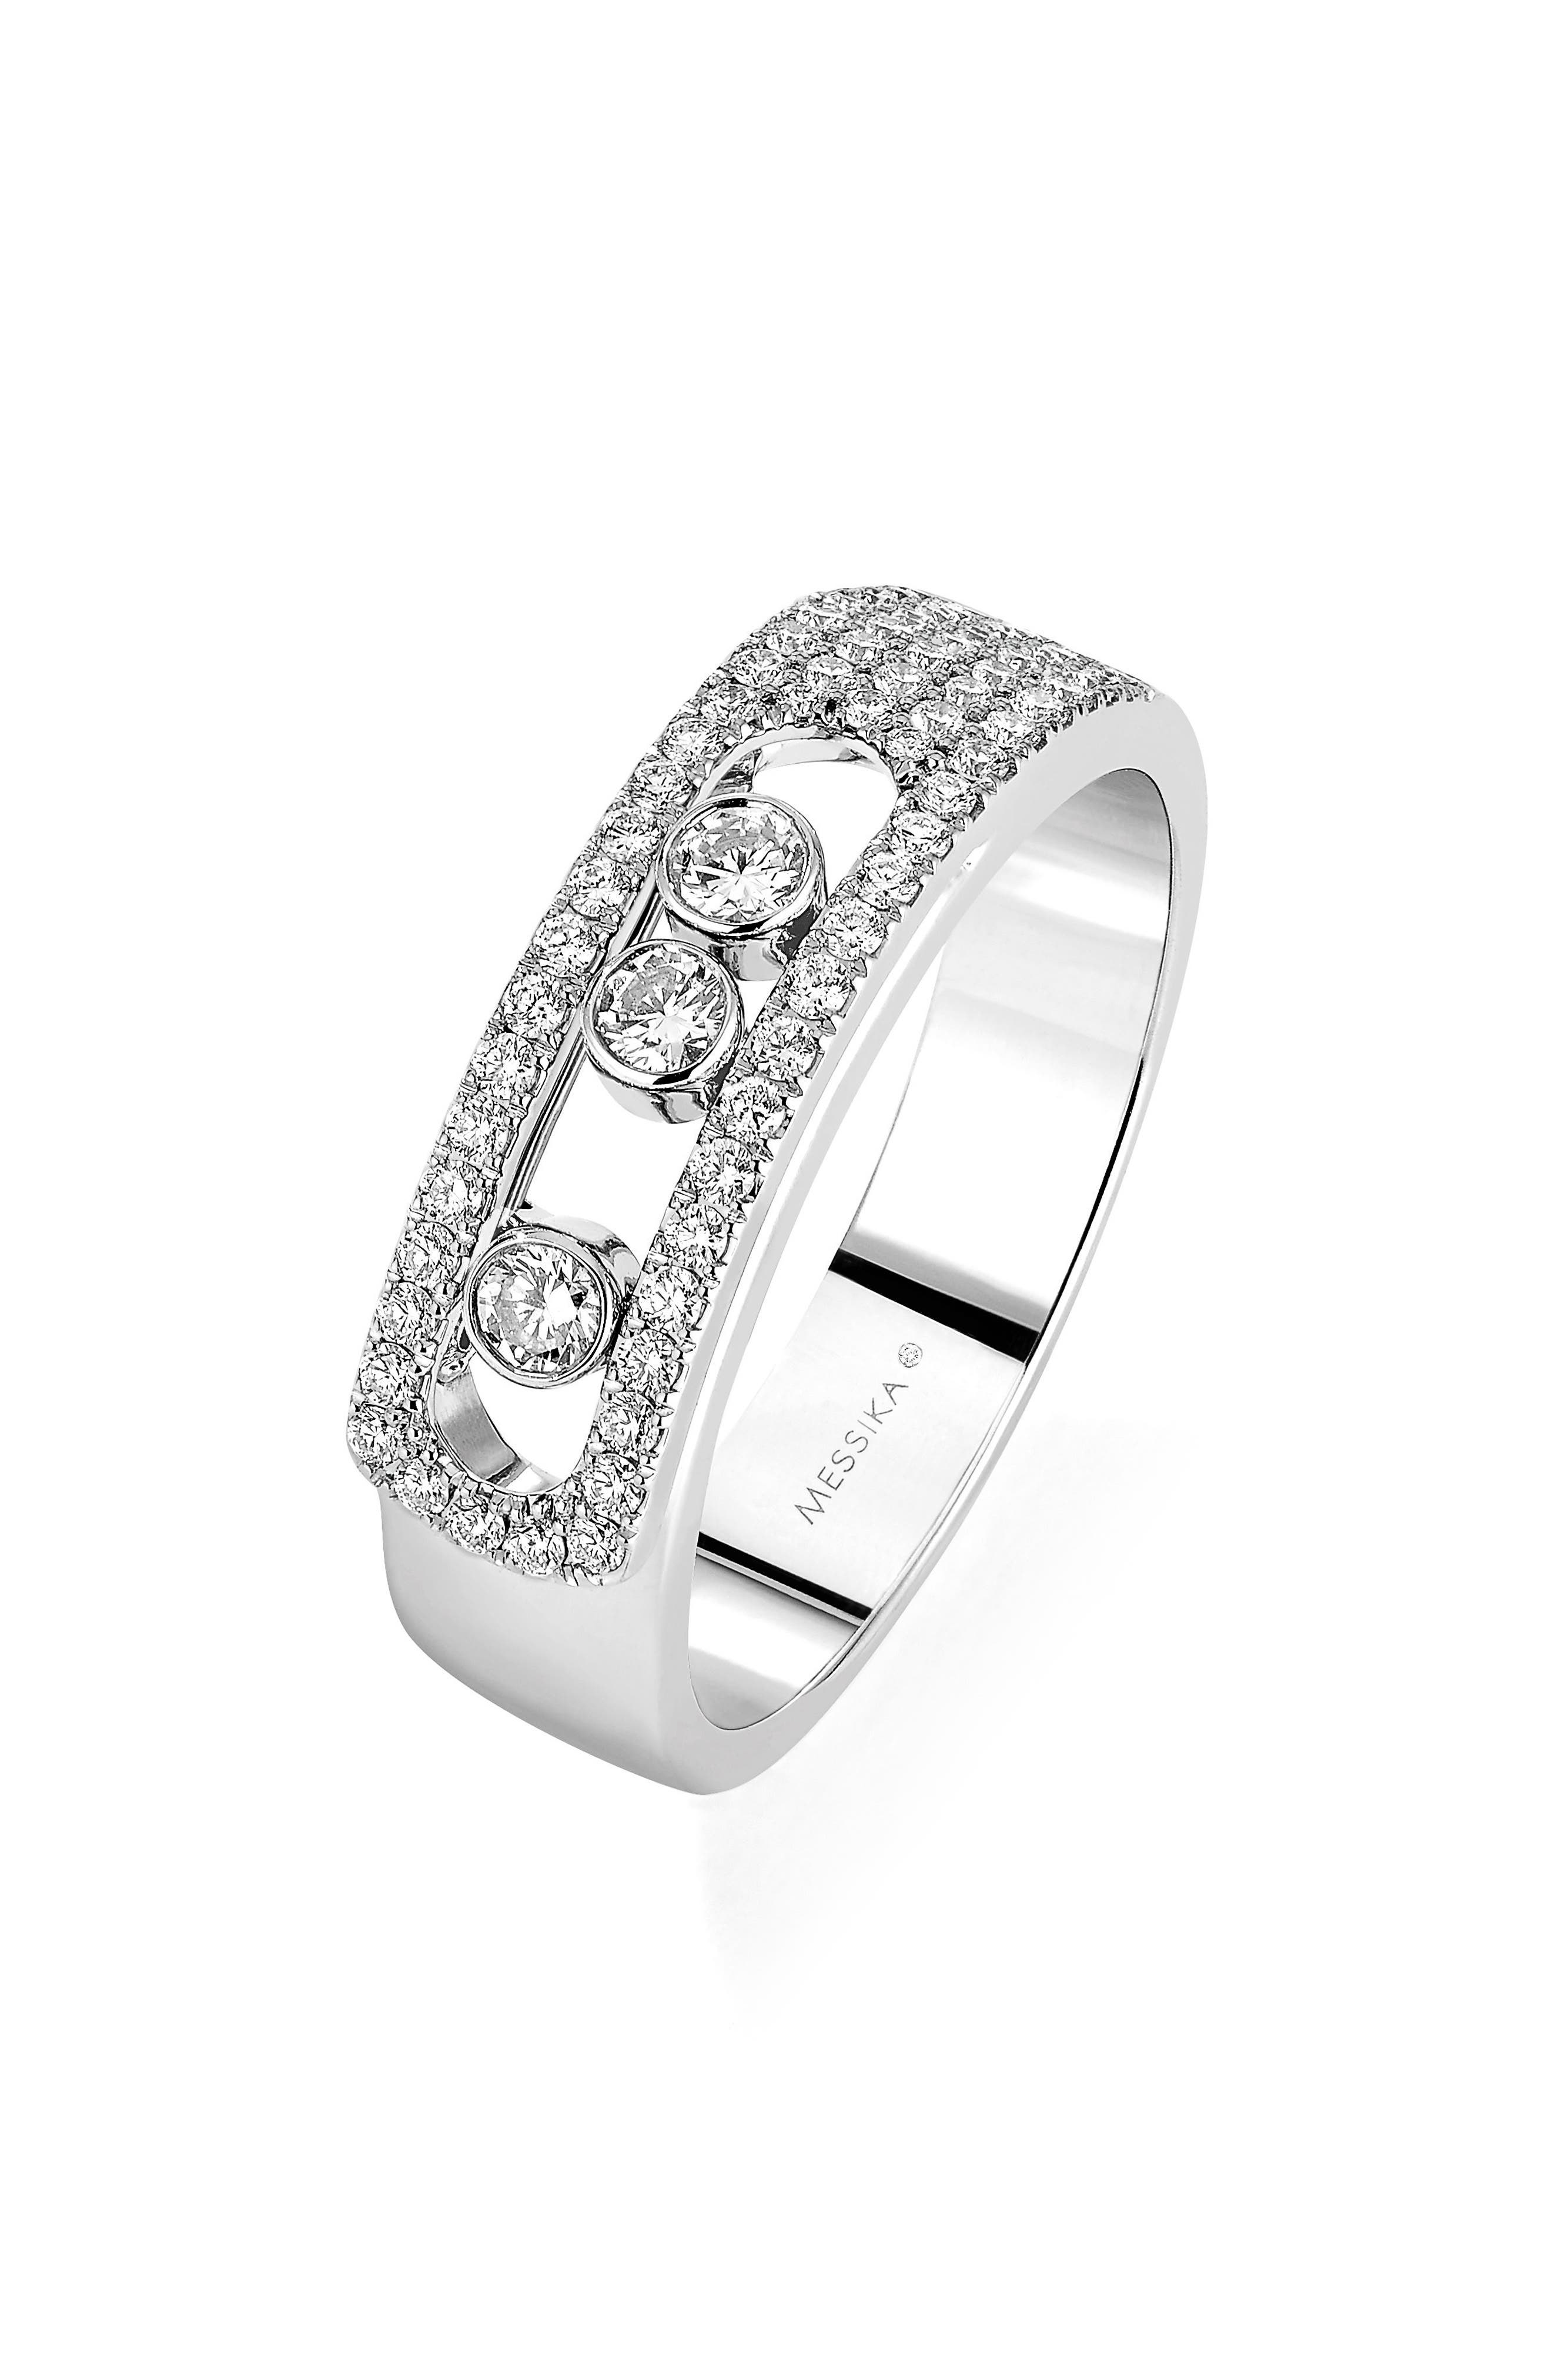 Move Noa Diamond Ring,                             Main thumbnail 1, color,                             WHITE GOLD